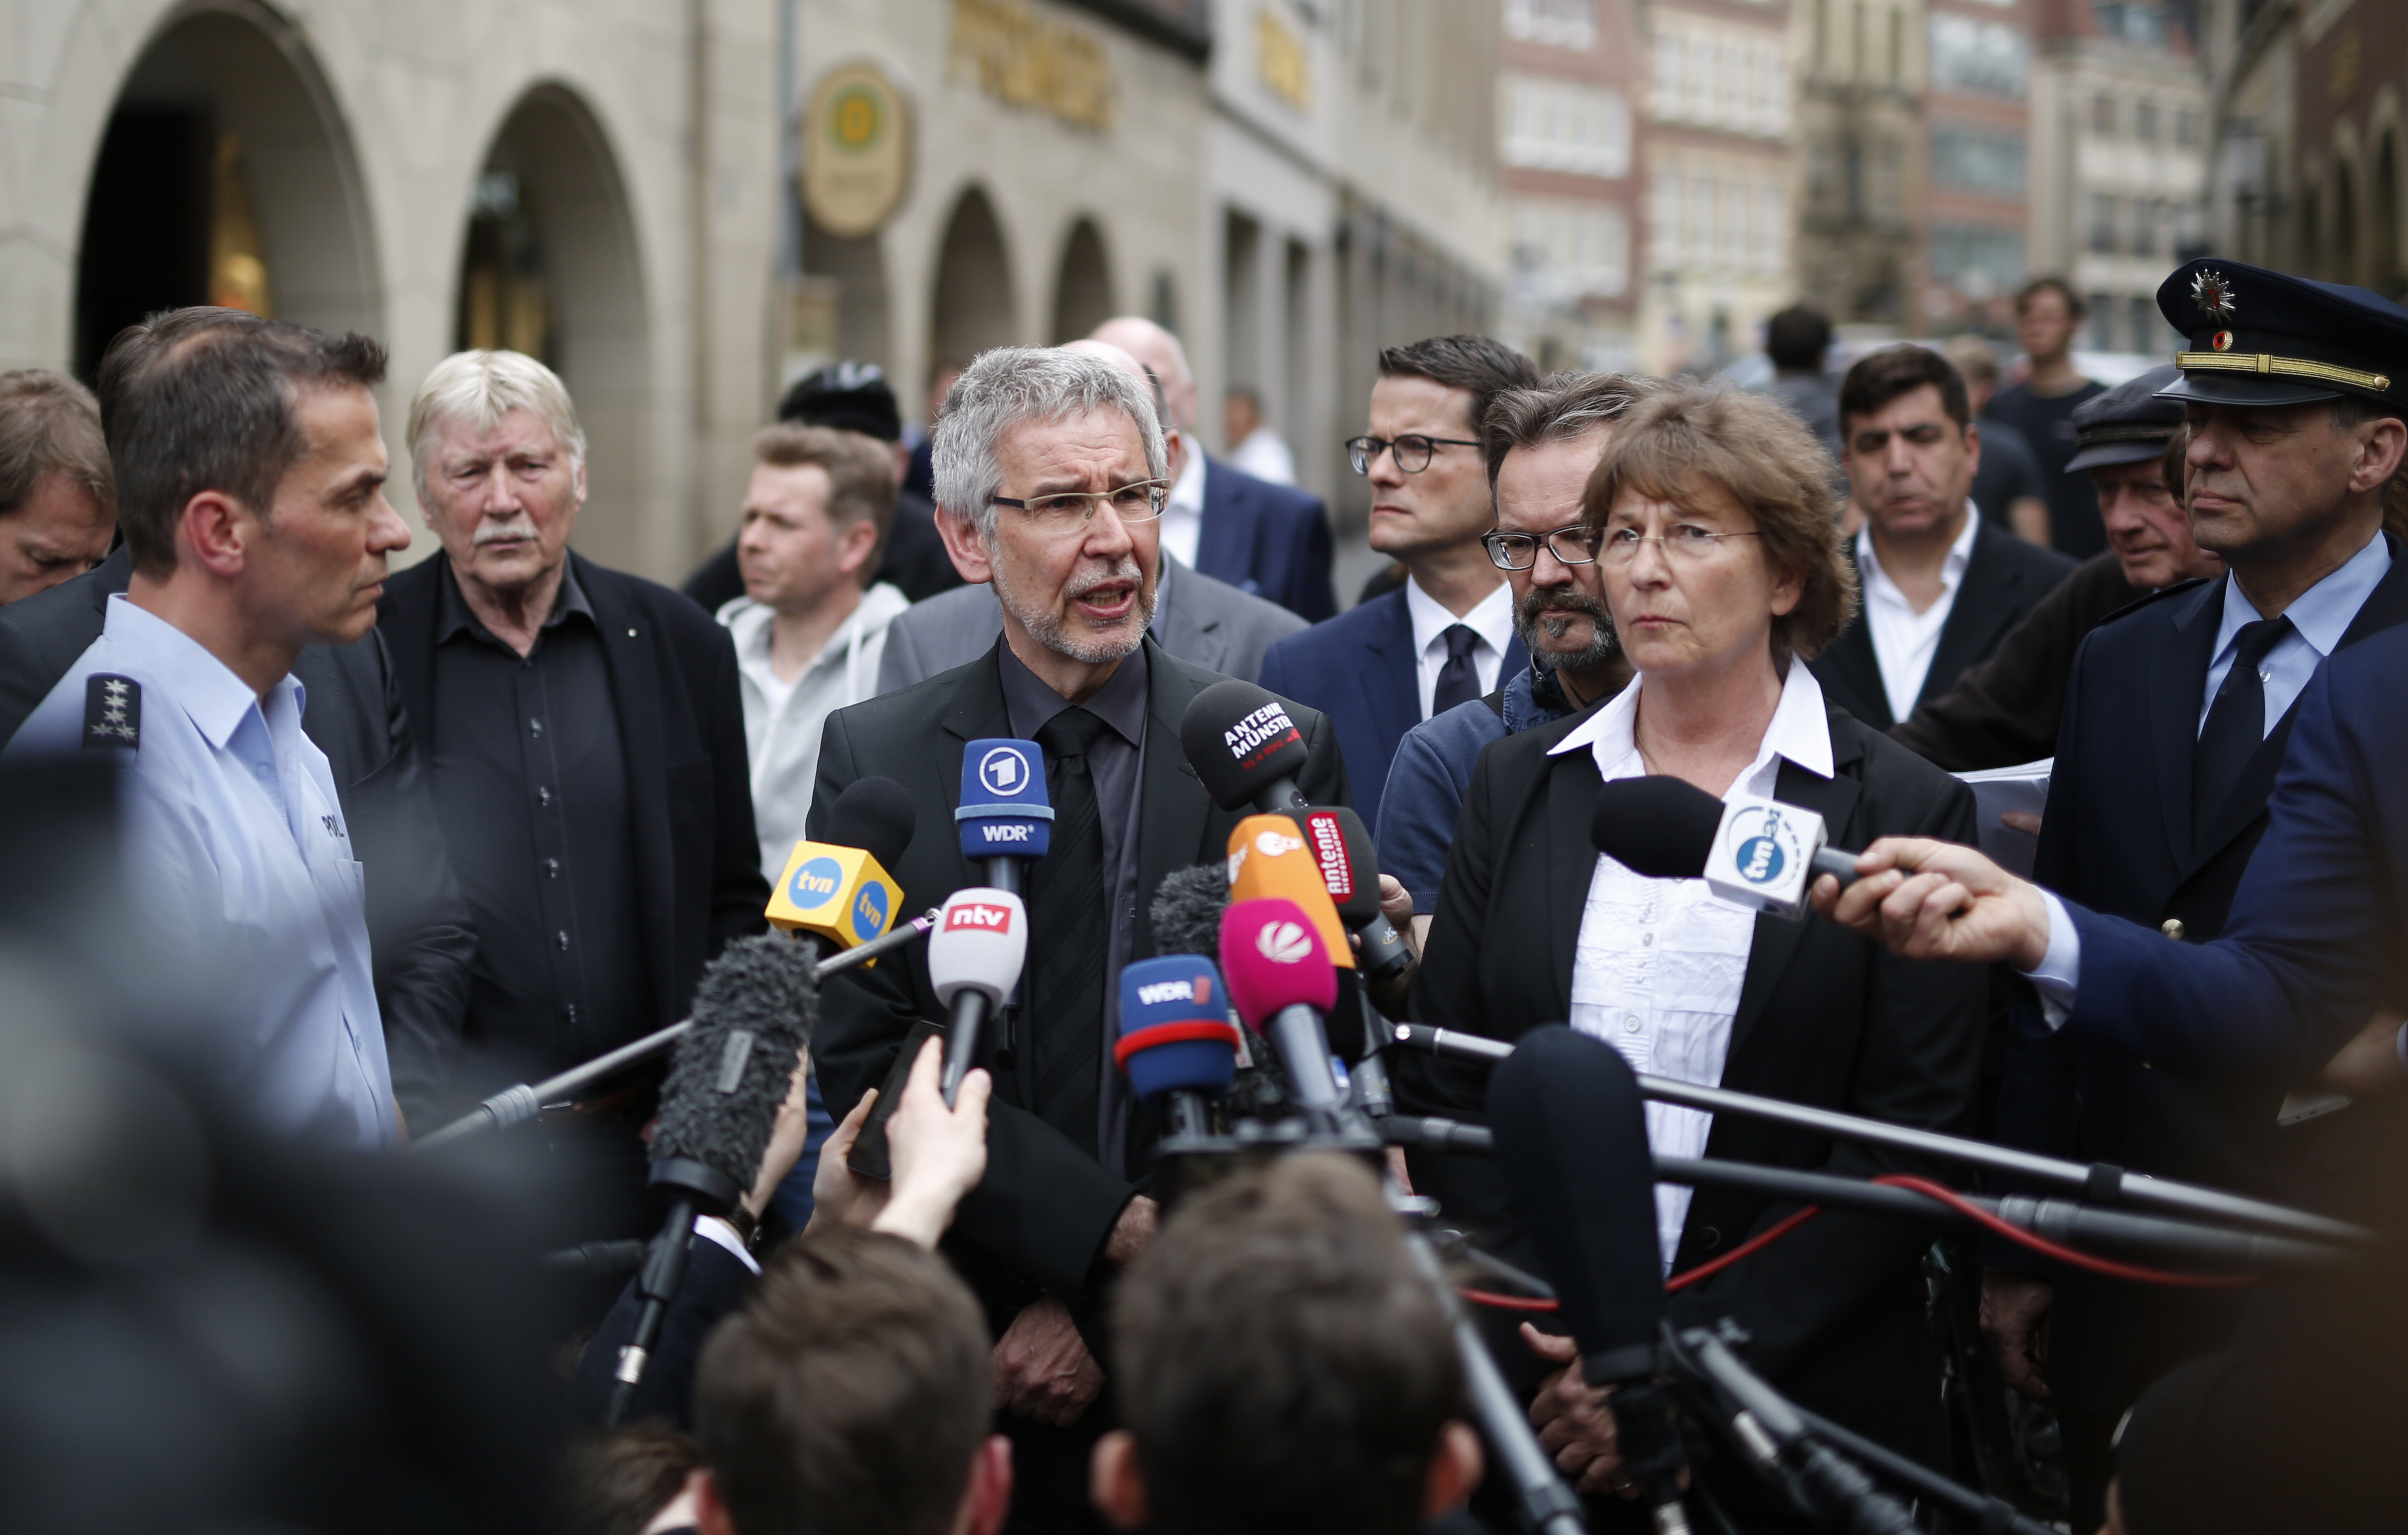 Head of police, Hans-Joachim Kuhlisch, center left, and prosecutor Elke Adomeit, center right,  give a statement in Muenster, Germany, Sunday, April 8, 2018. A van crashed into people drinking outside a popular bar Saturday in the German city of Muenster, killing two people and injuring 20 others before the driver of the vehicle shot and killed himself inside it, police said. (Ina Fassbender/dpa via AP)